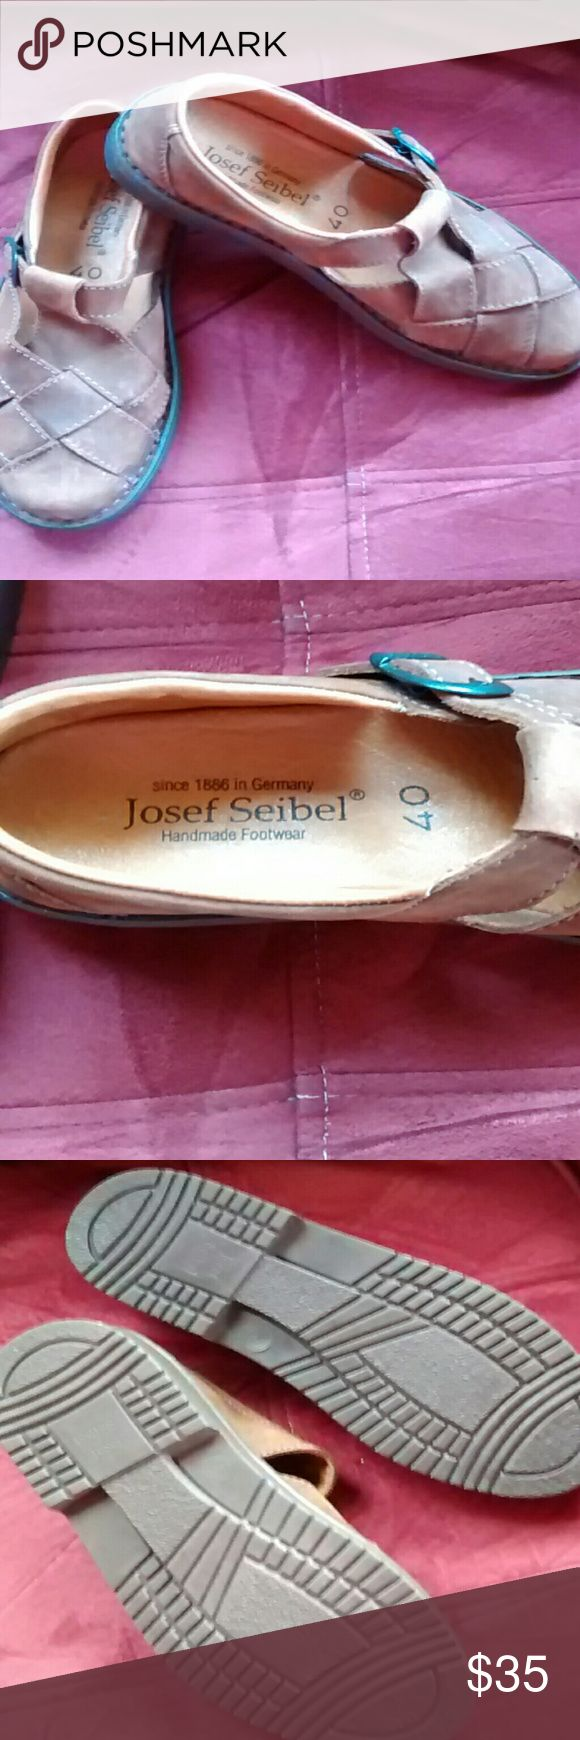 Josef Seibel shoes sz 40 Brown leather Josef Seibel, never been worn. Josef Seibel Shoes Espadrilles